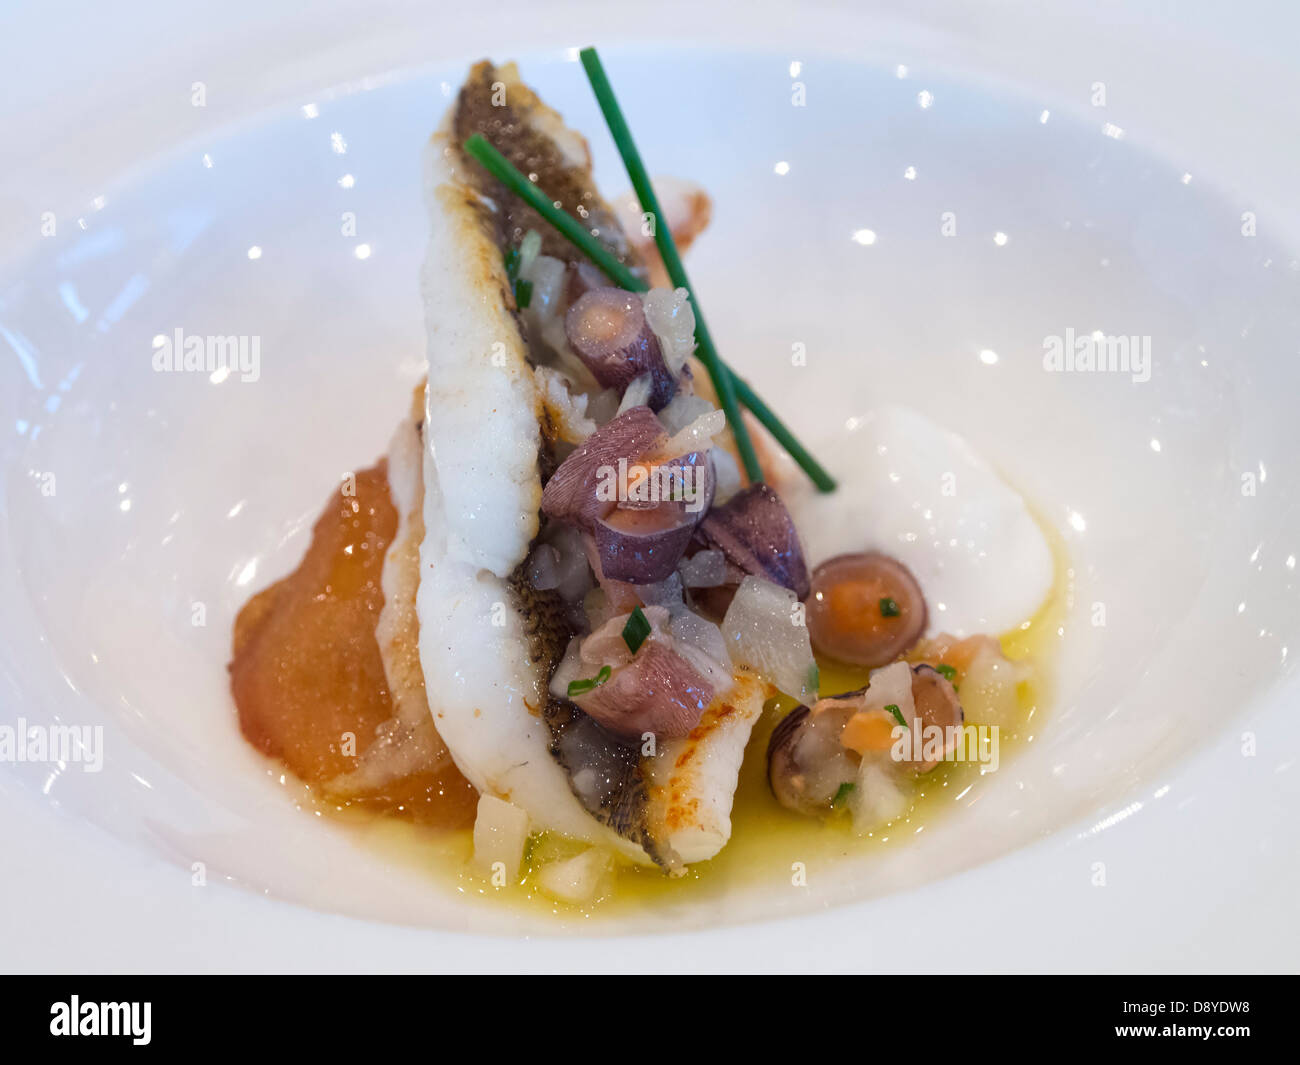 Nouvelle cuisine gourmet seafood dish stock photo royalty for Nouvelle cuisine